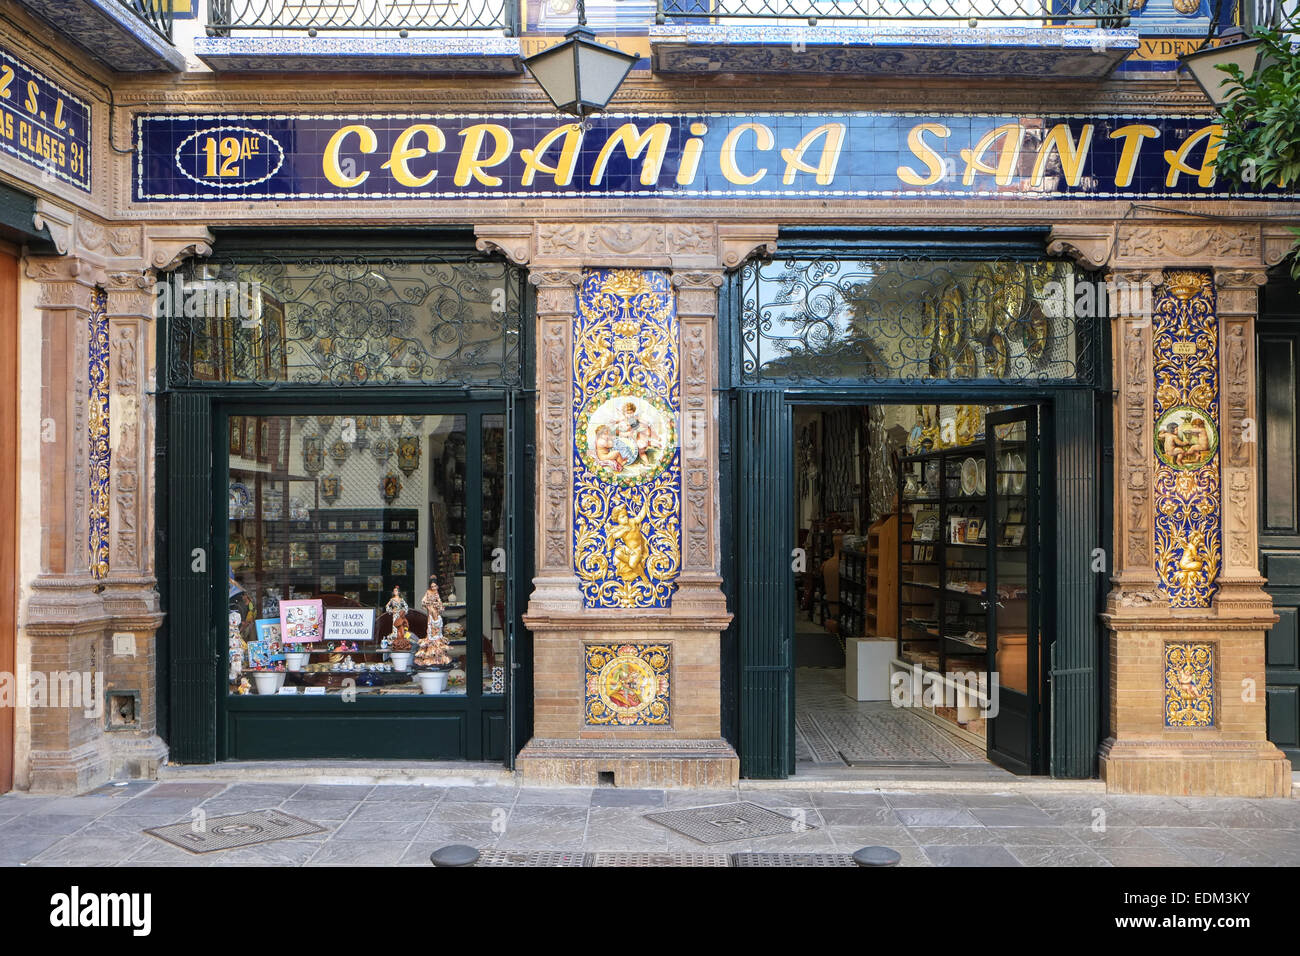 Ceramic Tile Spain Stock Photos Ceramic Tile Spain Stock Images - Ceramic tile shops near me